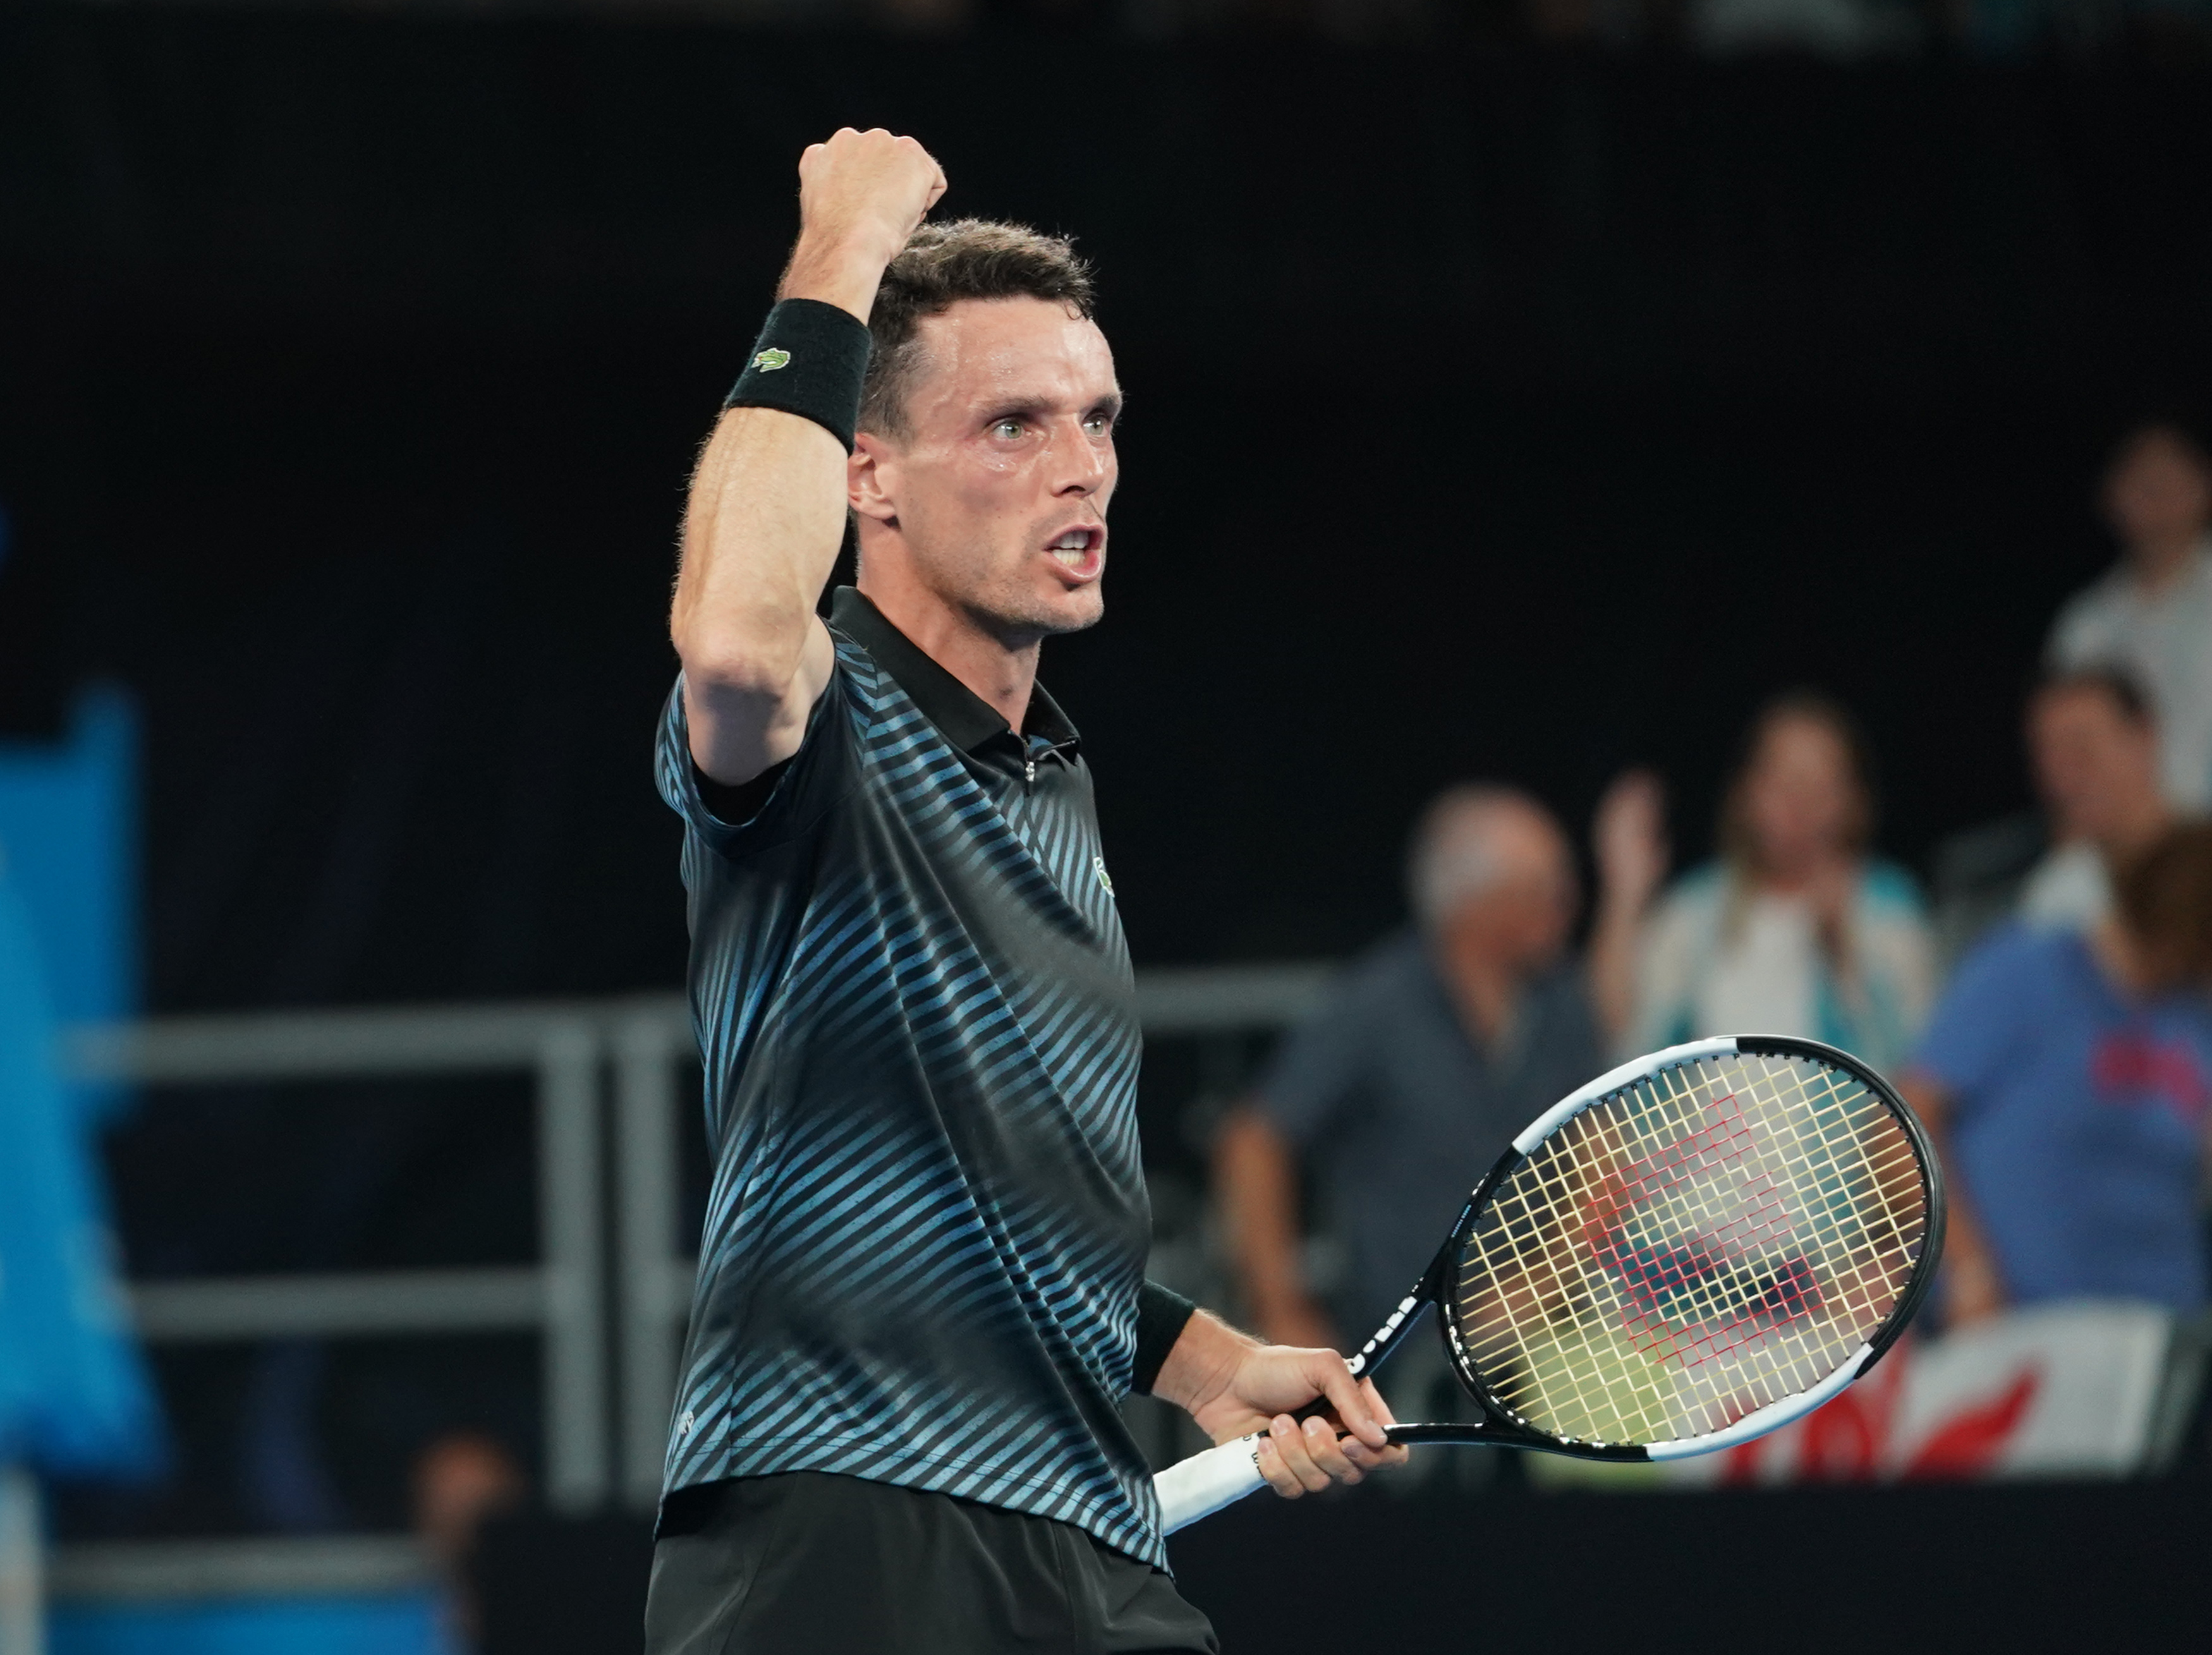 Tennis-Bautista Agut overcomes early jitters to beat Gasquet